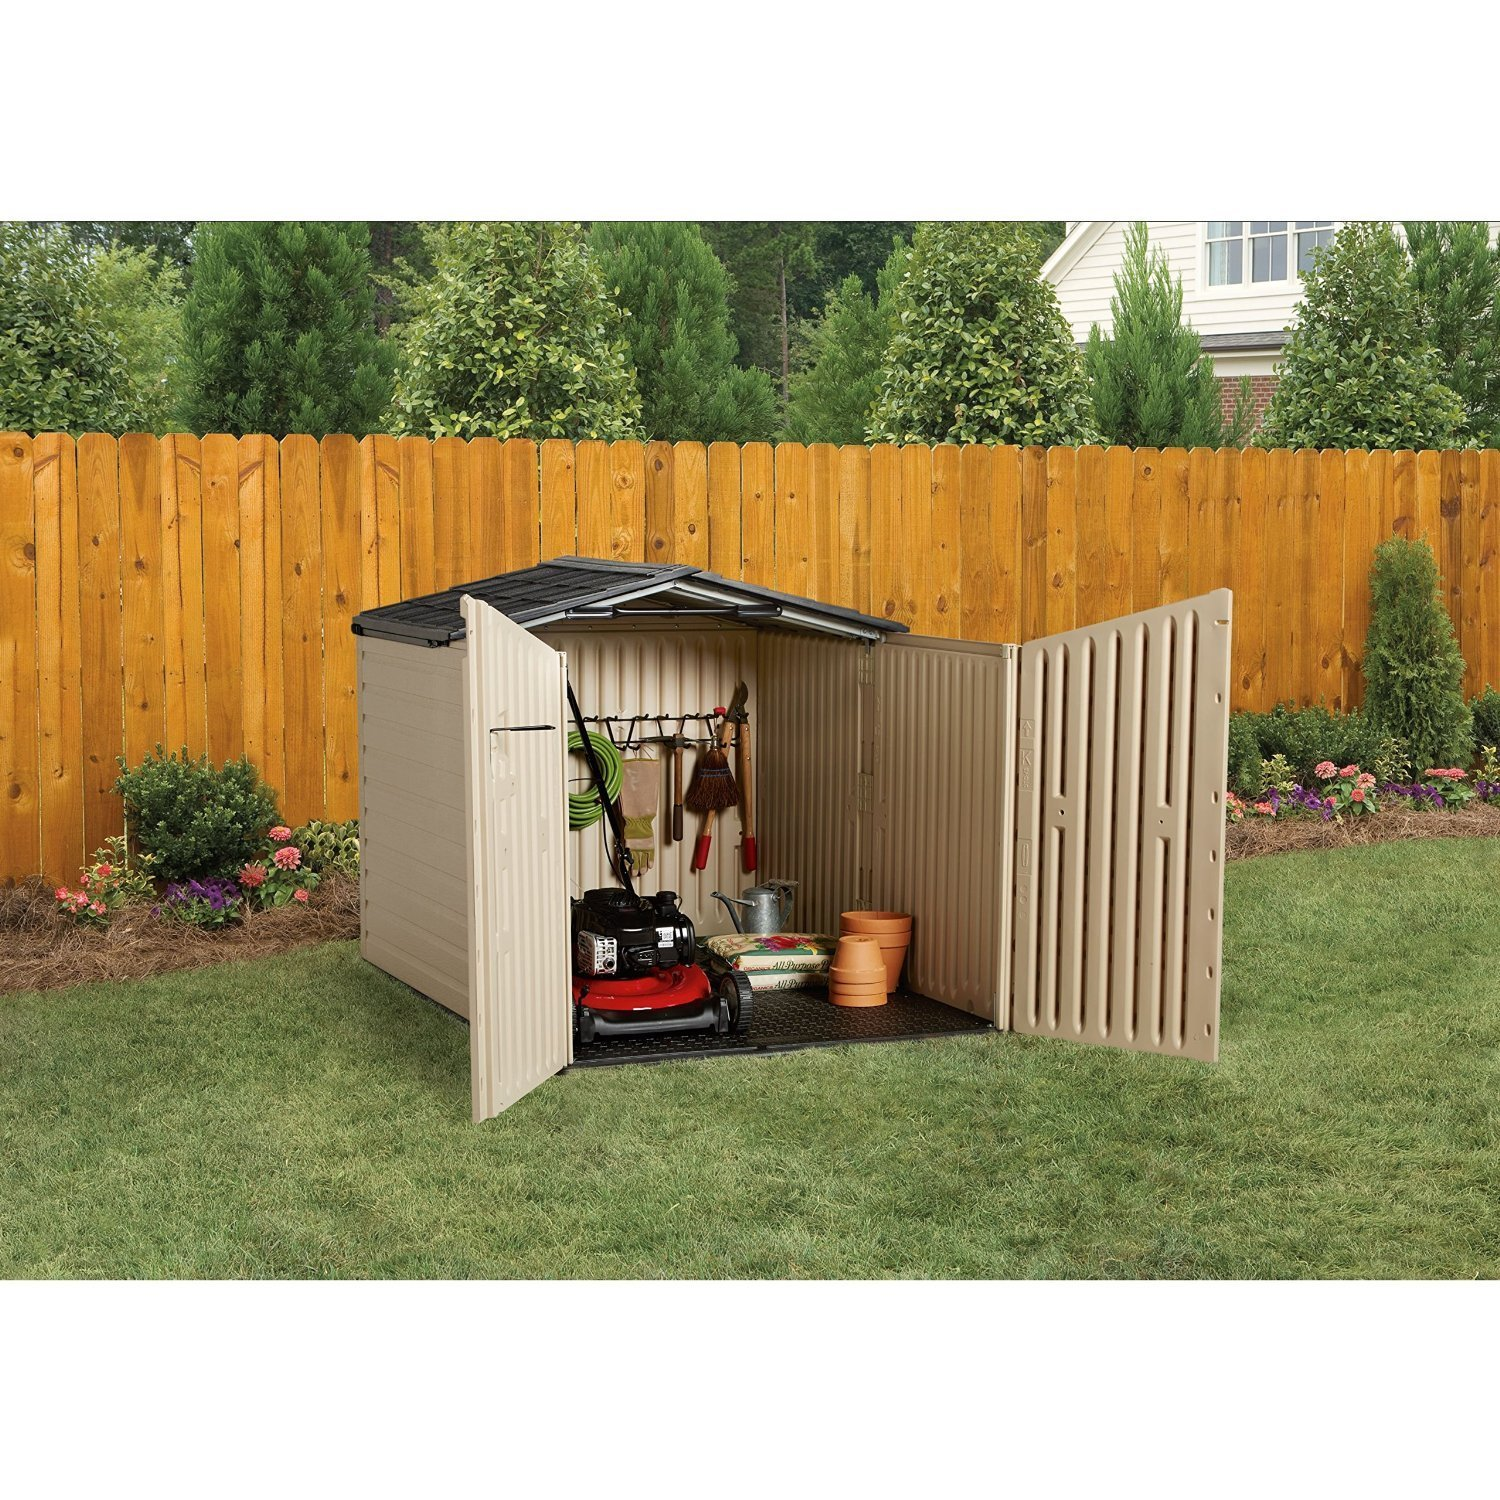 pent ideas garden sheds shed x themiracle biz rubbermaid uk gable designs overlap door winchester storage roughneck